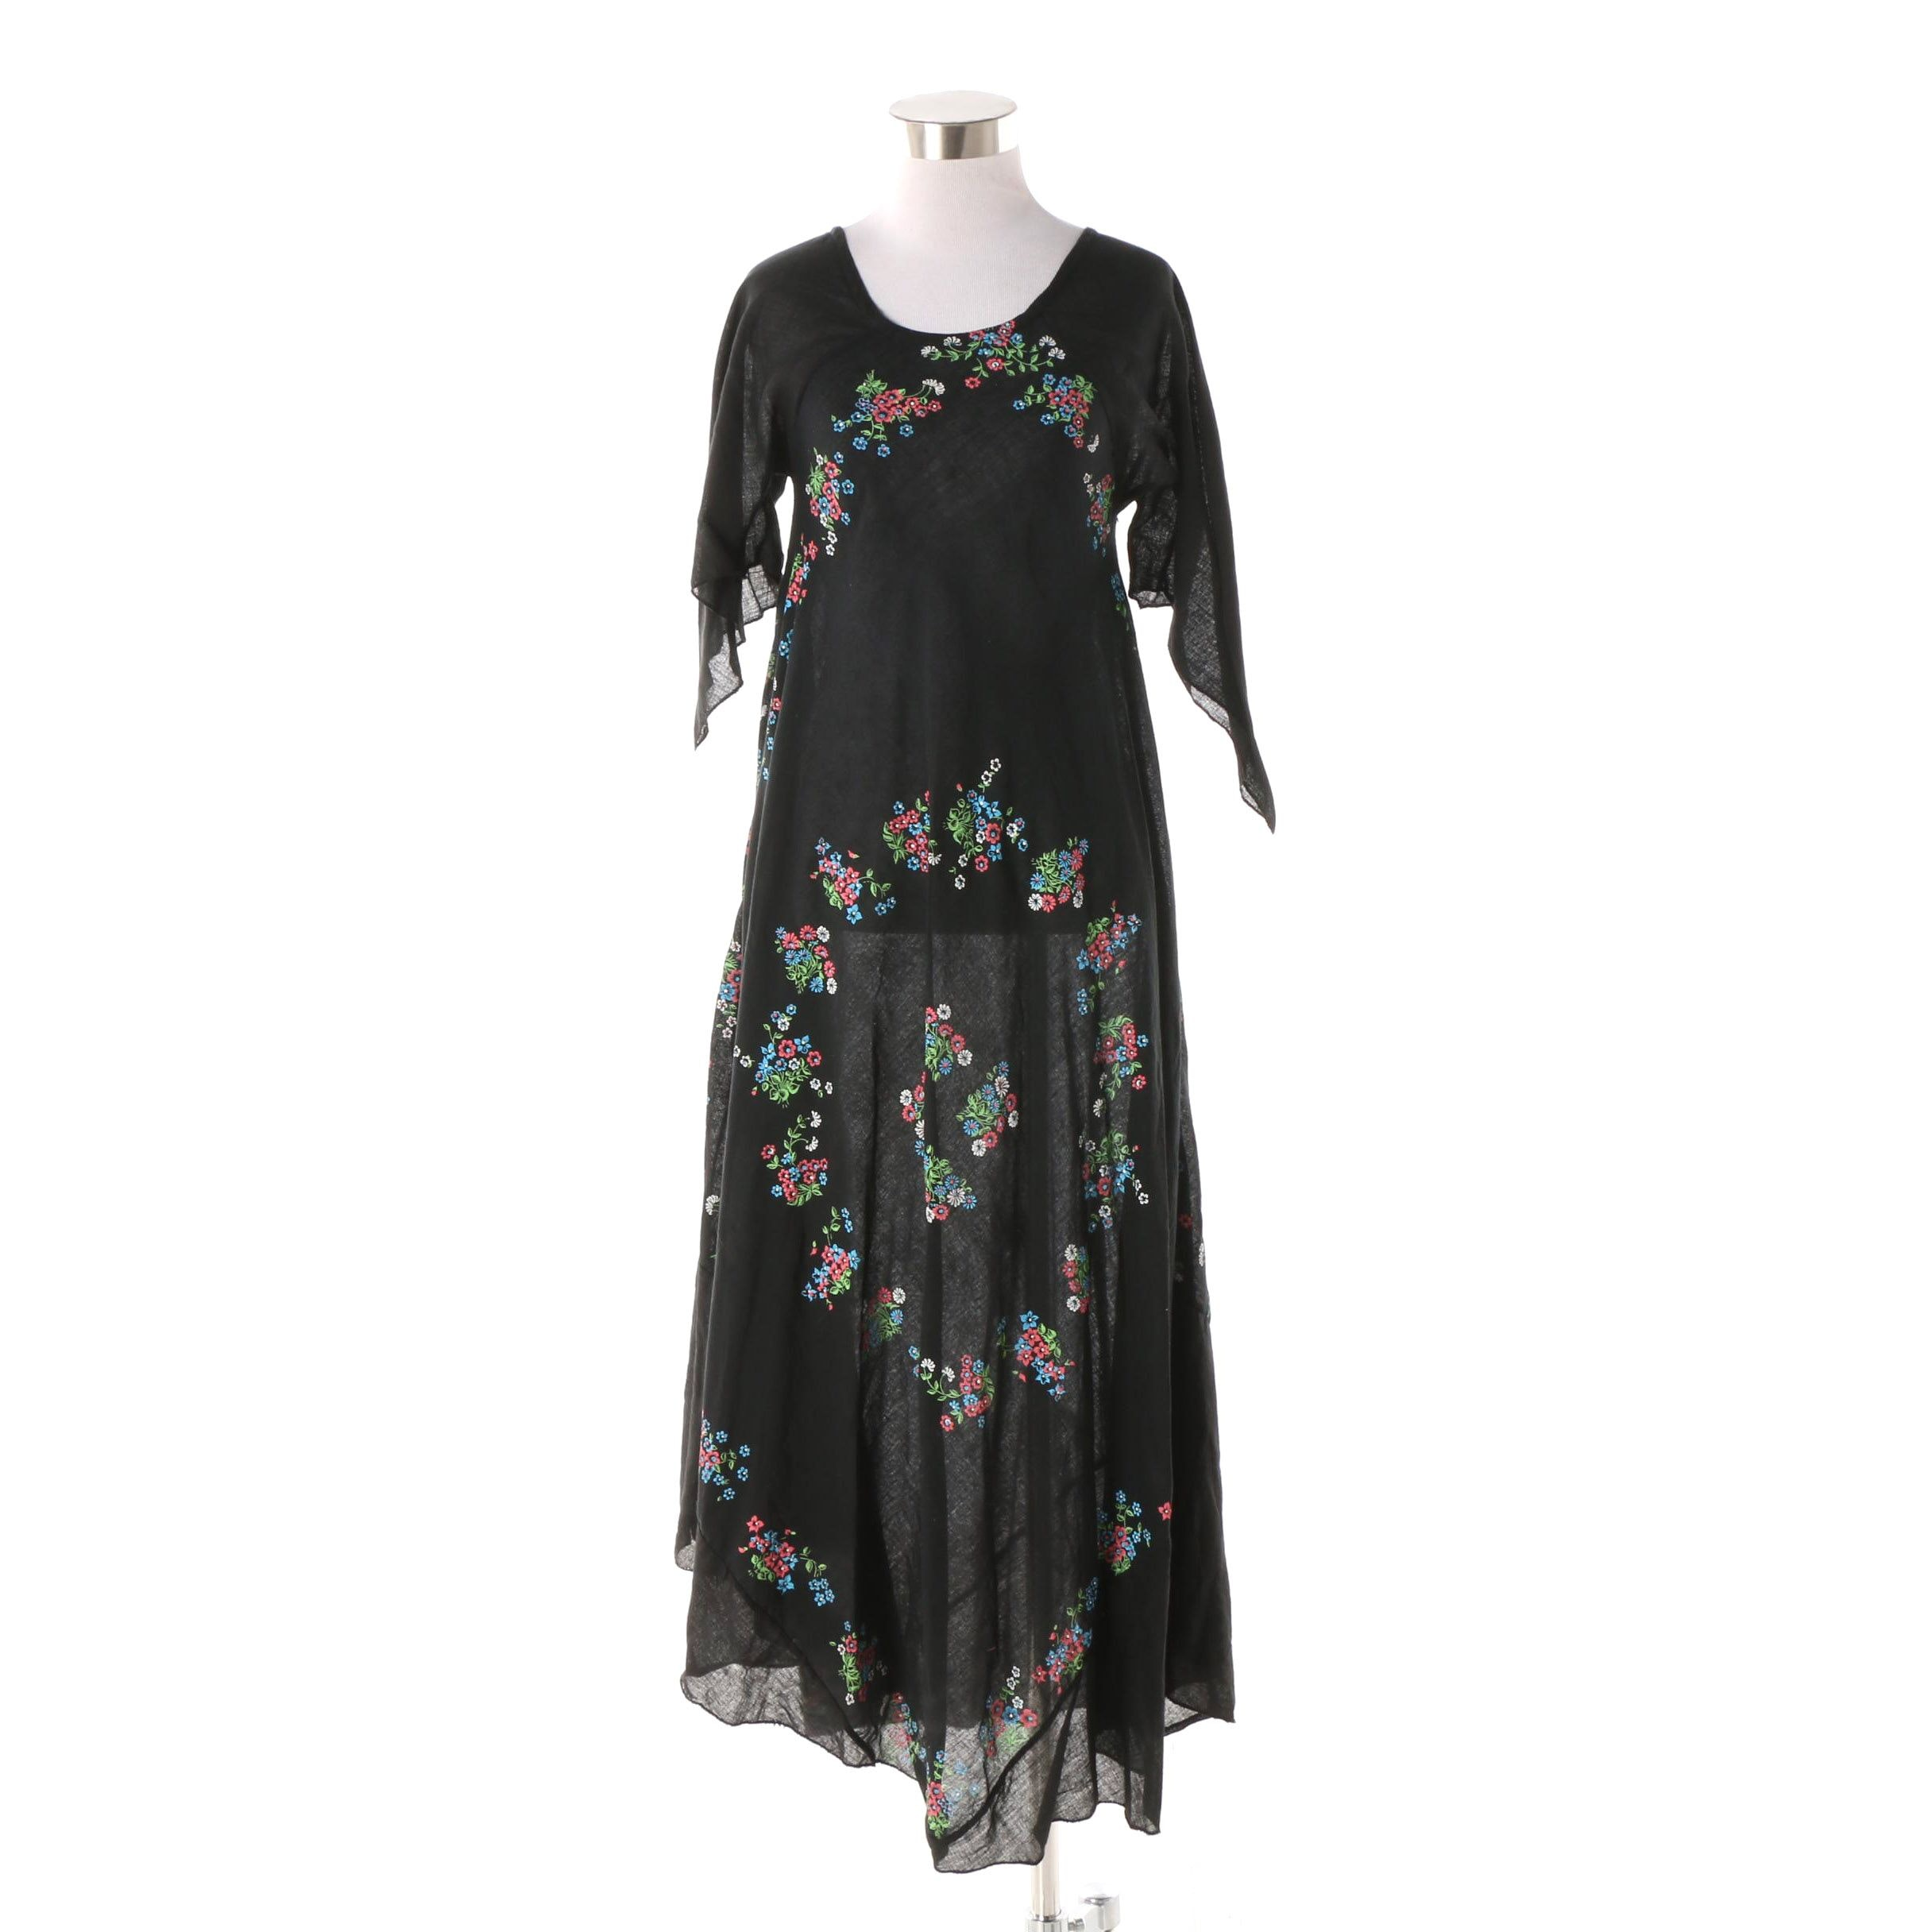 Women's Vintage Black Cotton Gauze Stencil Print Trapeze Dress